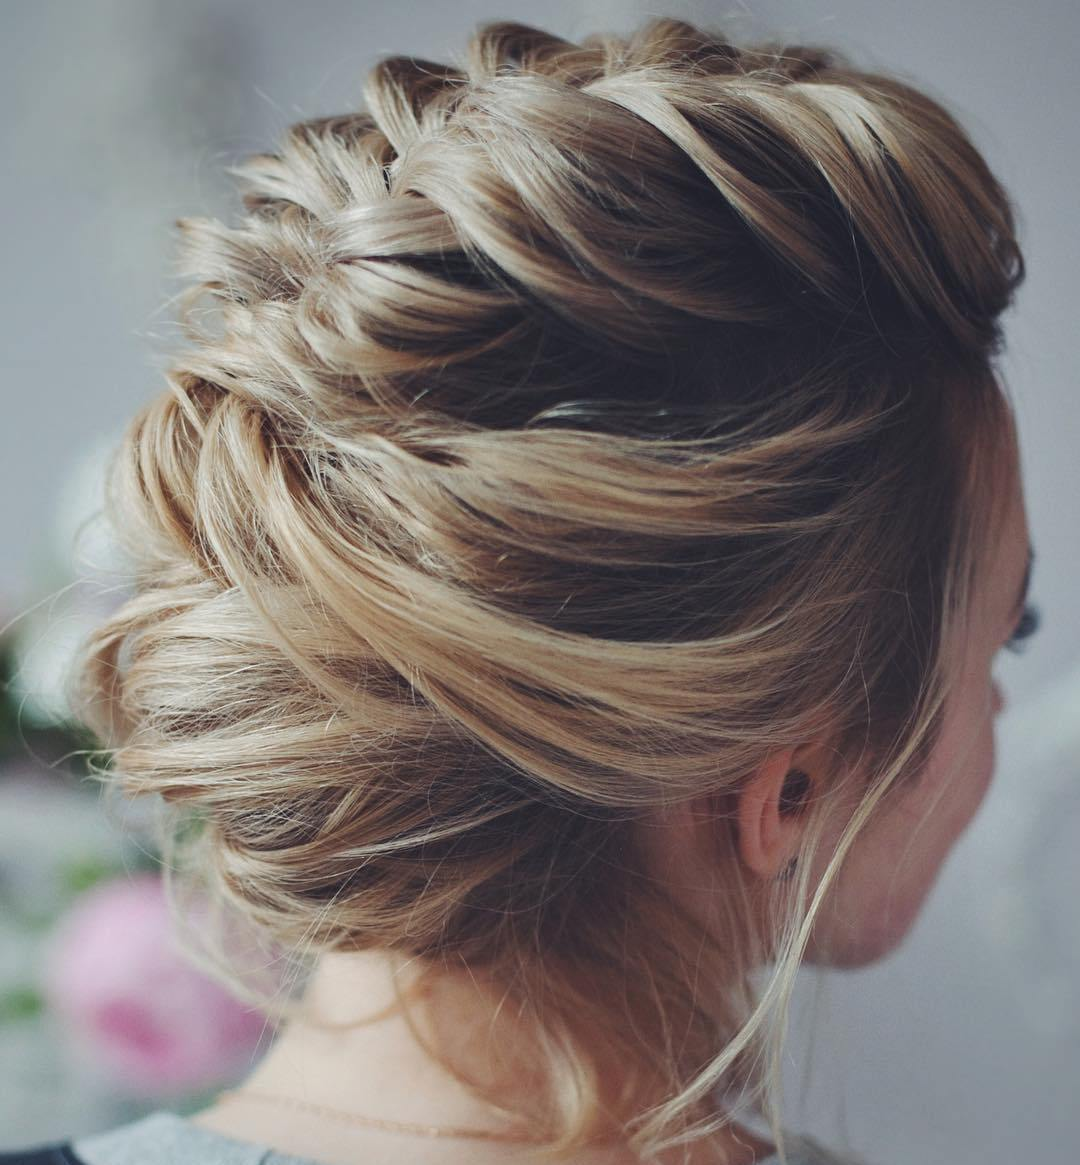 The perfect hairstyle makes the perfect   prom diva